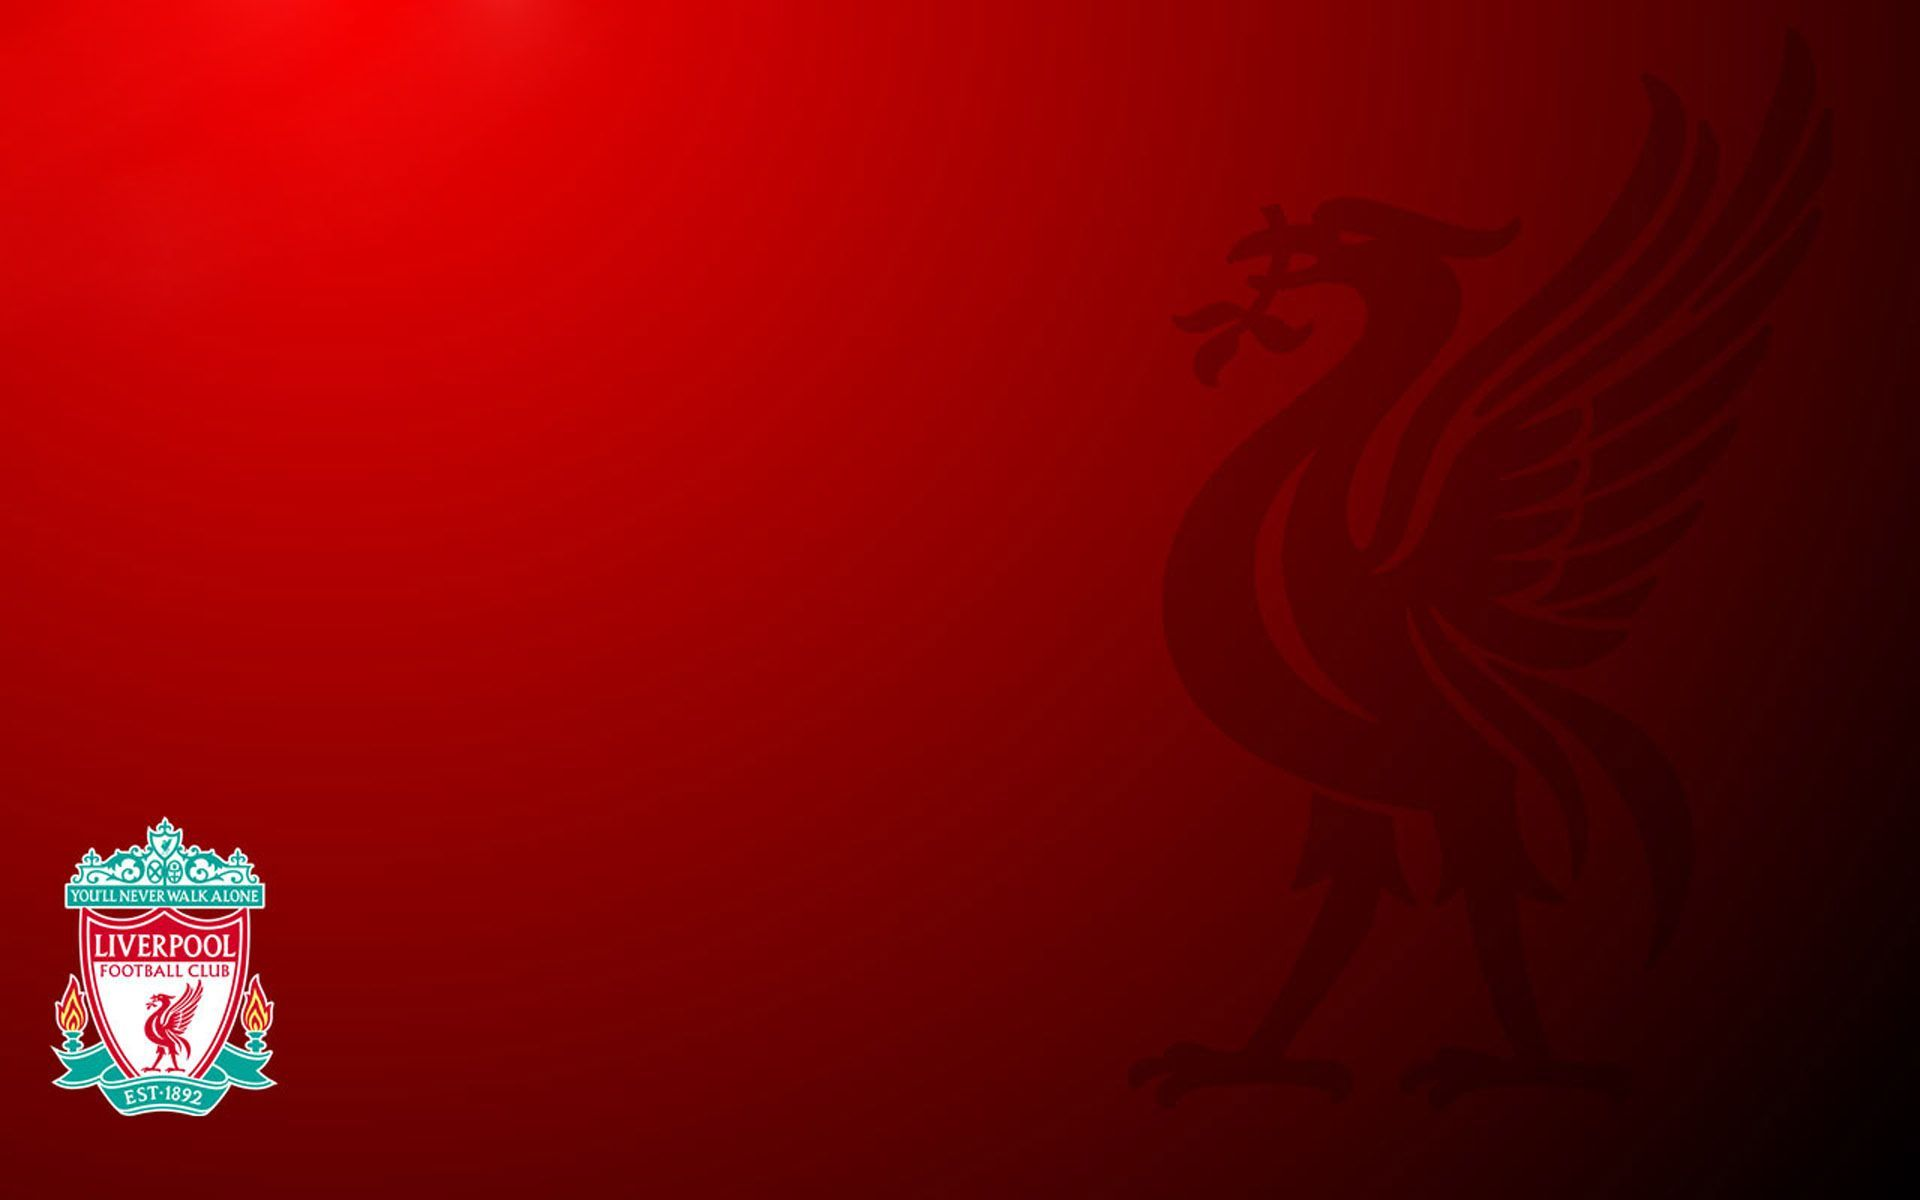 Free Download 50 Liverpool Fc Laptop Wallpapers Download At Wallpaperbro 1920x1200 For Your Desktop Mobile Tablet Explore 53 Lfc Background Lfc Wallpaper Lfc Background